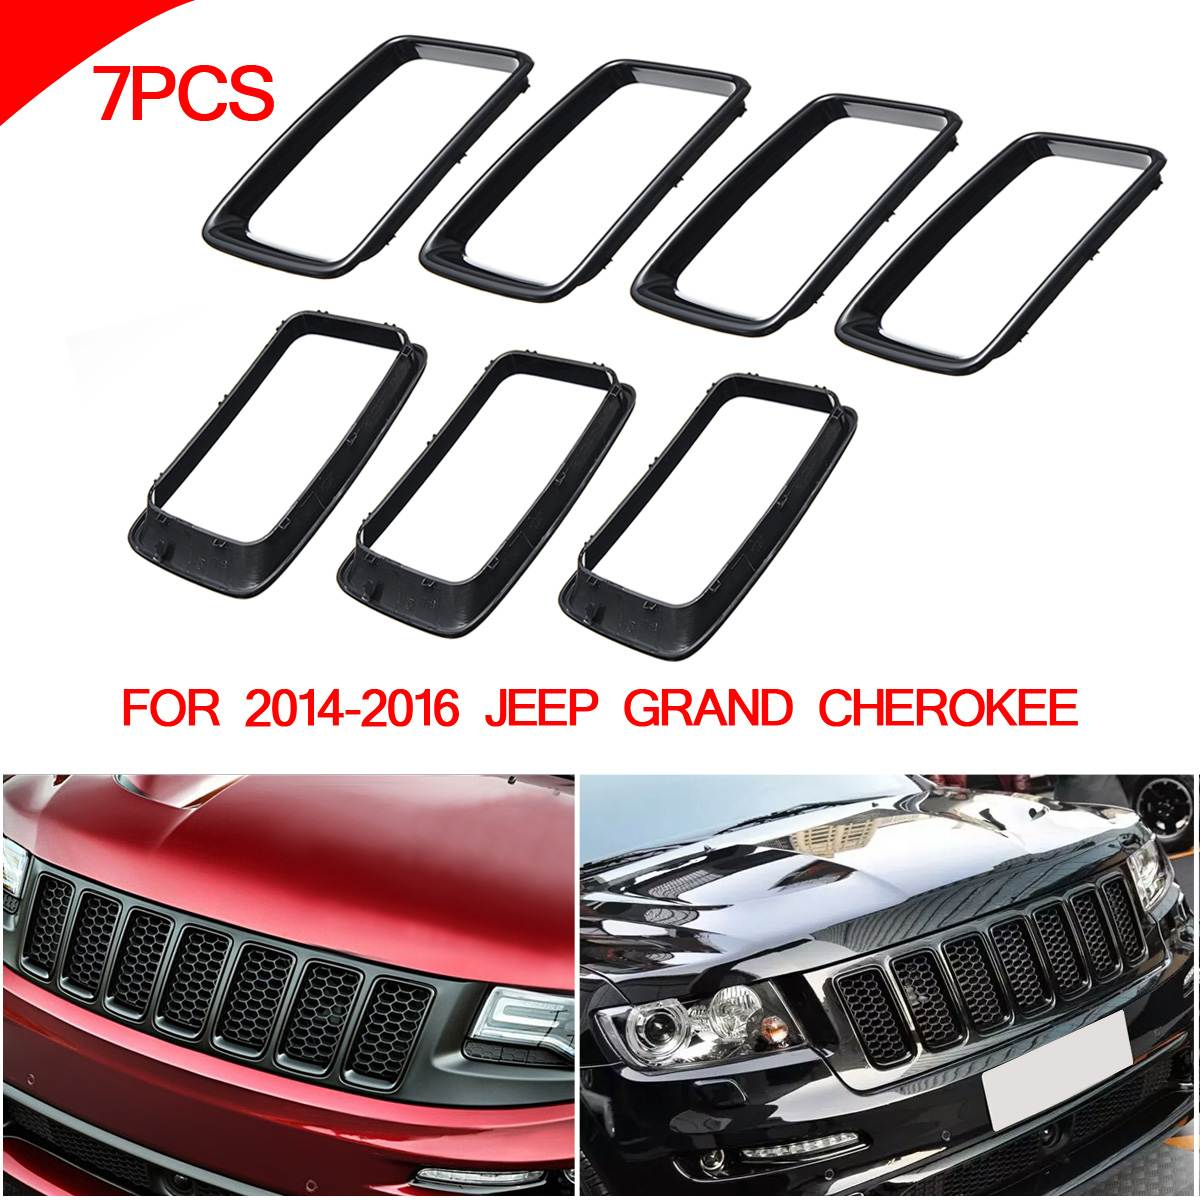 Front Grille Vent Hole Trim Ring Insert BLK For Jeep Grand Cherokee 2014-2016 sheer insert frill trim blouse